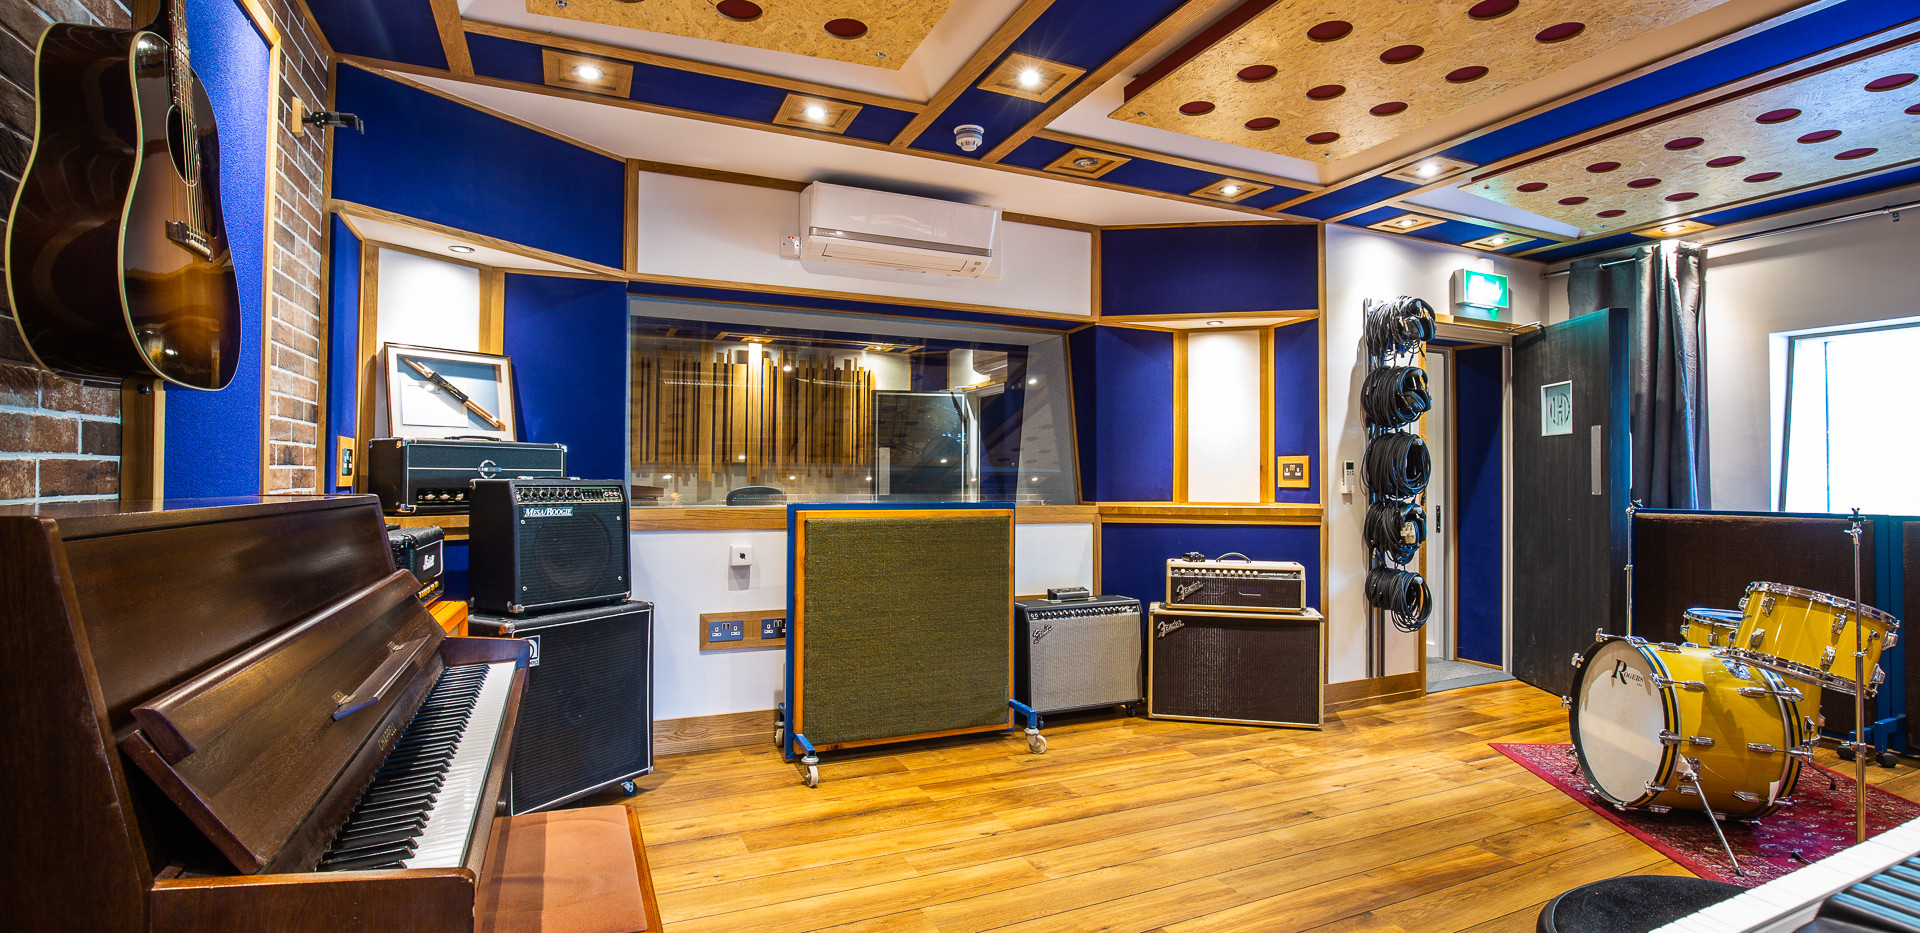 The Hive Rooms - RECORDING STUDIO A